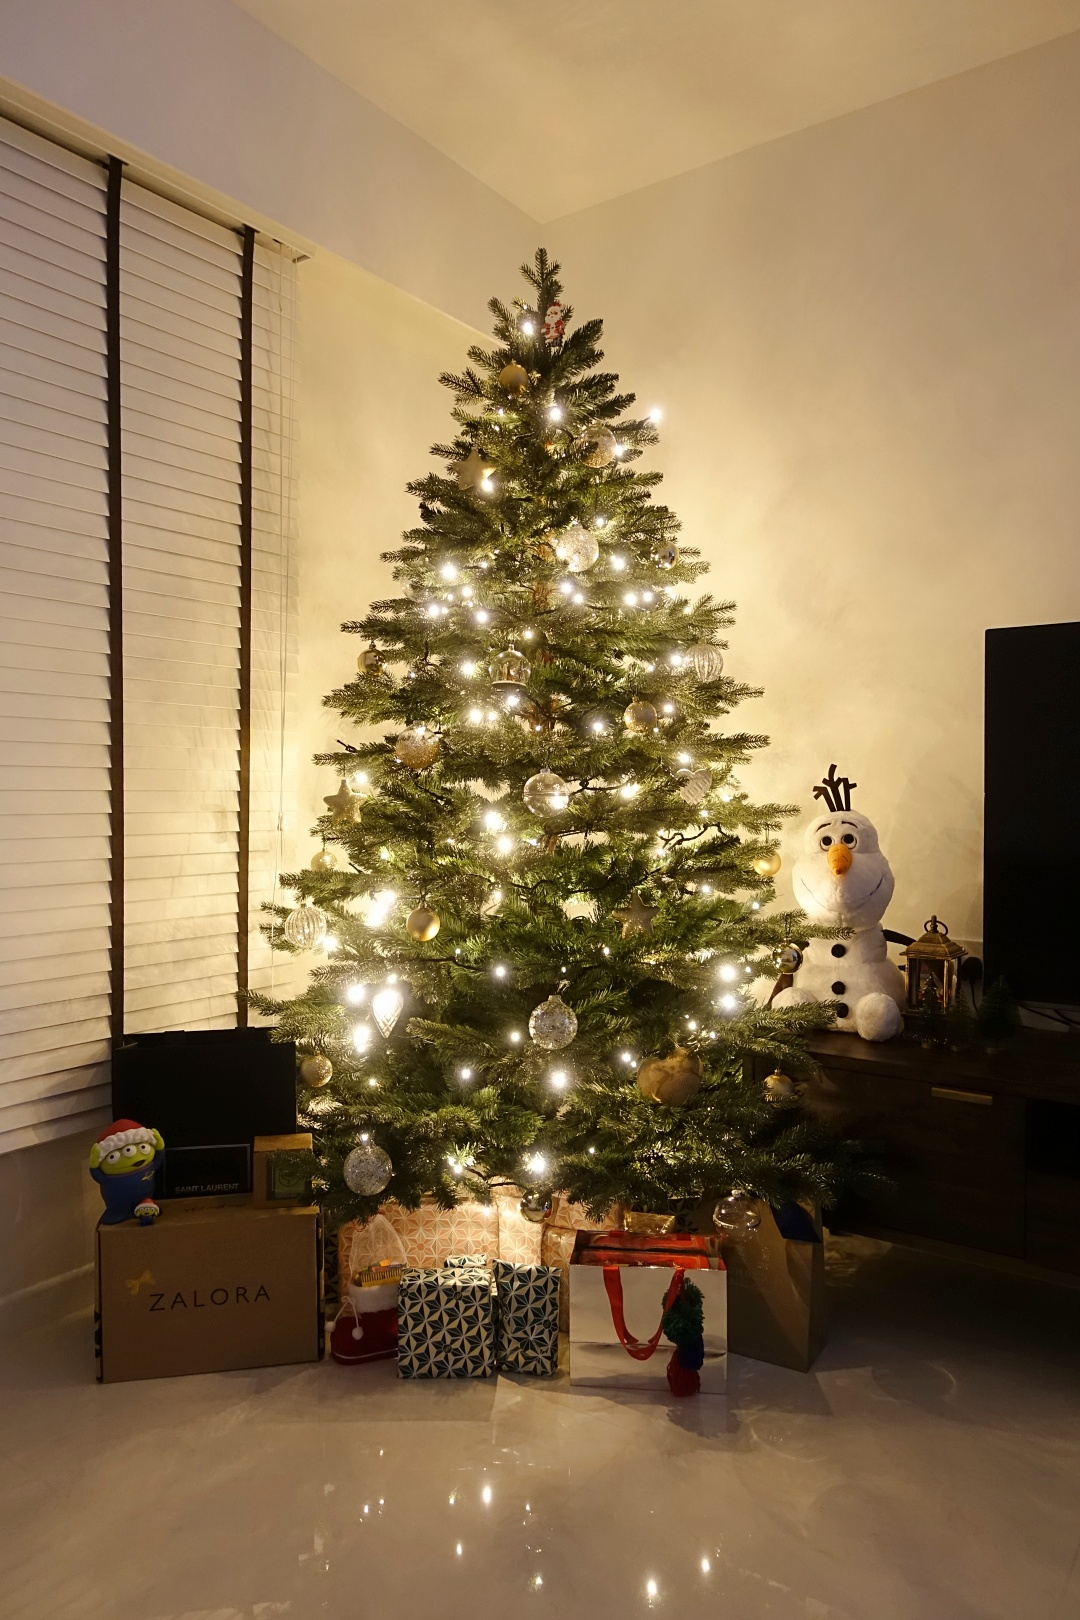 2019 Christmas Tree | joanne-khoo.com